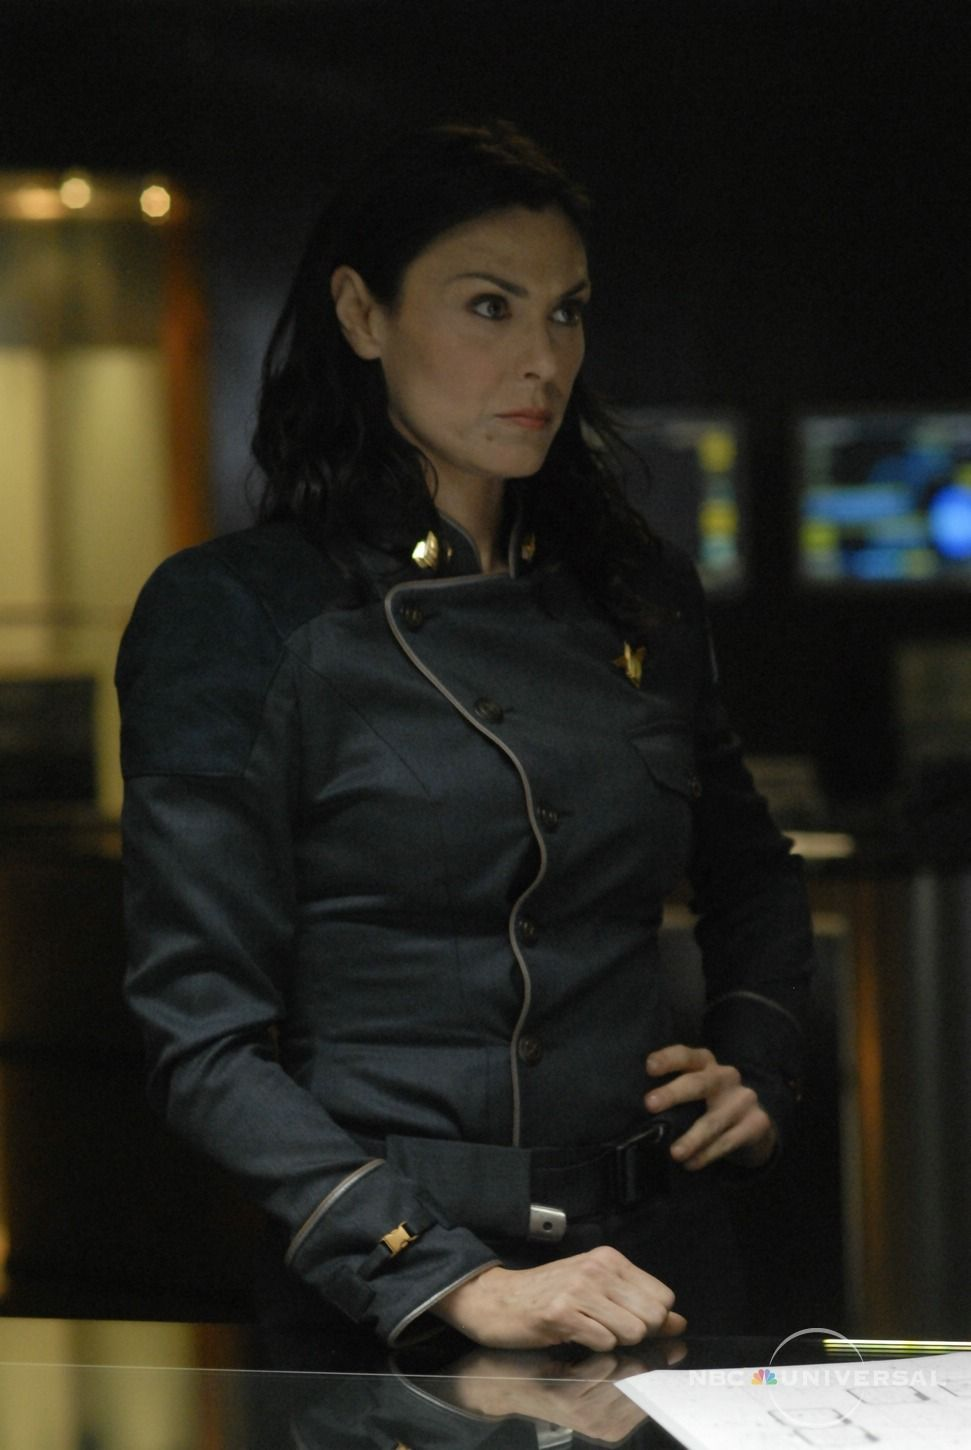 Helena Cain (Michelle Forbes) - Humaine - Amirale ... Michelle Forbes Battlestar Galactica